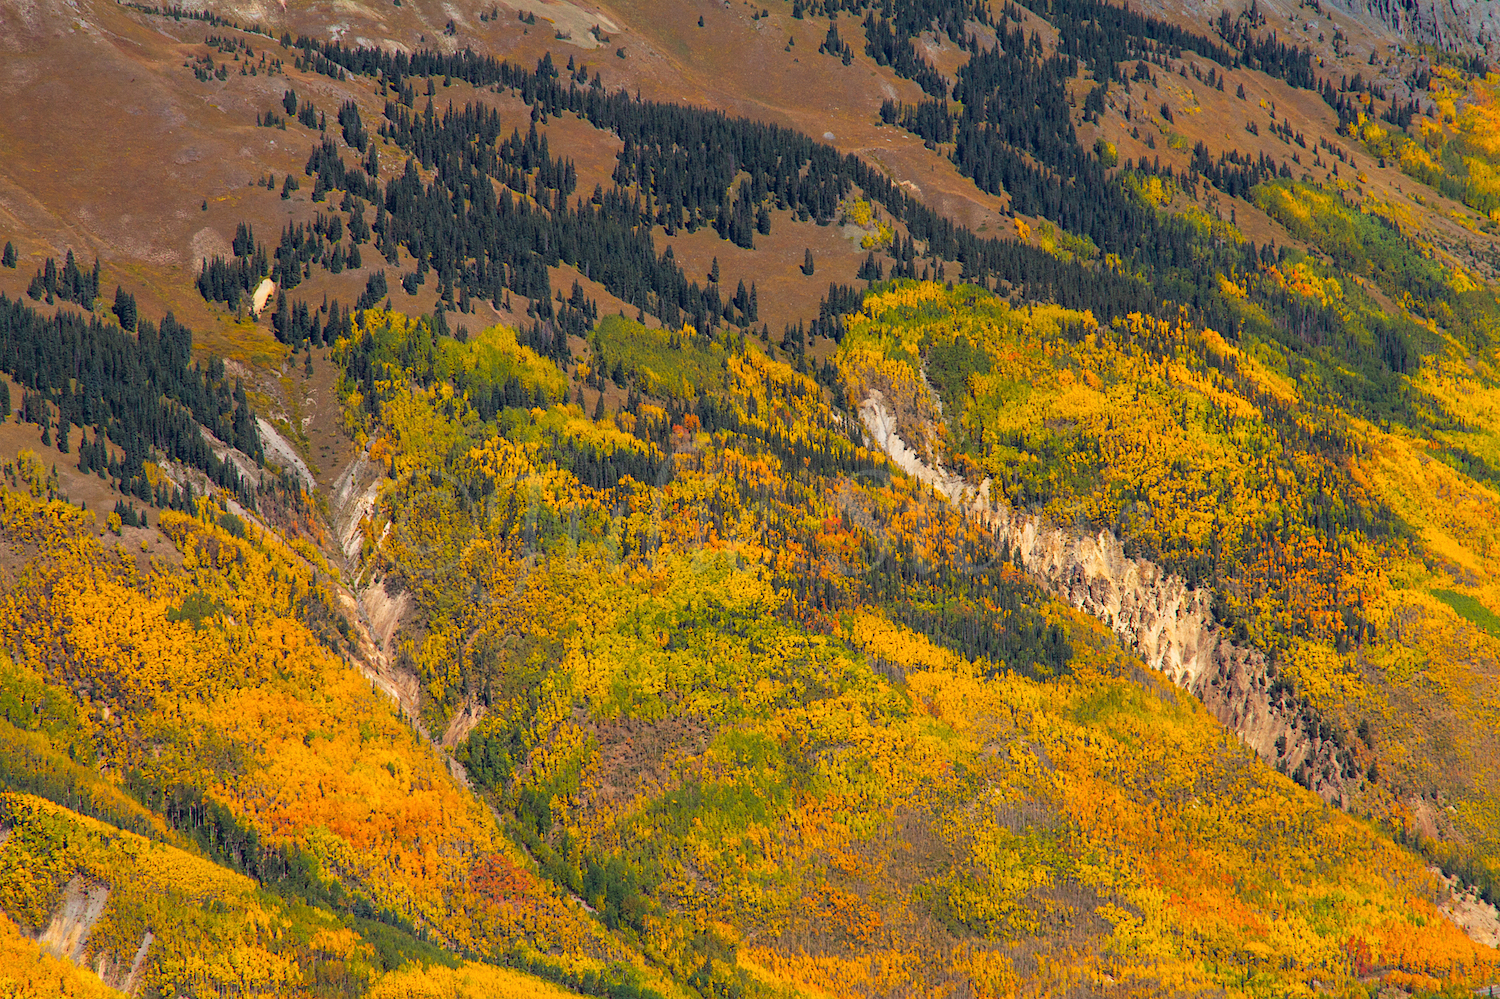 Red Mountain #3, Image #1124